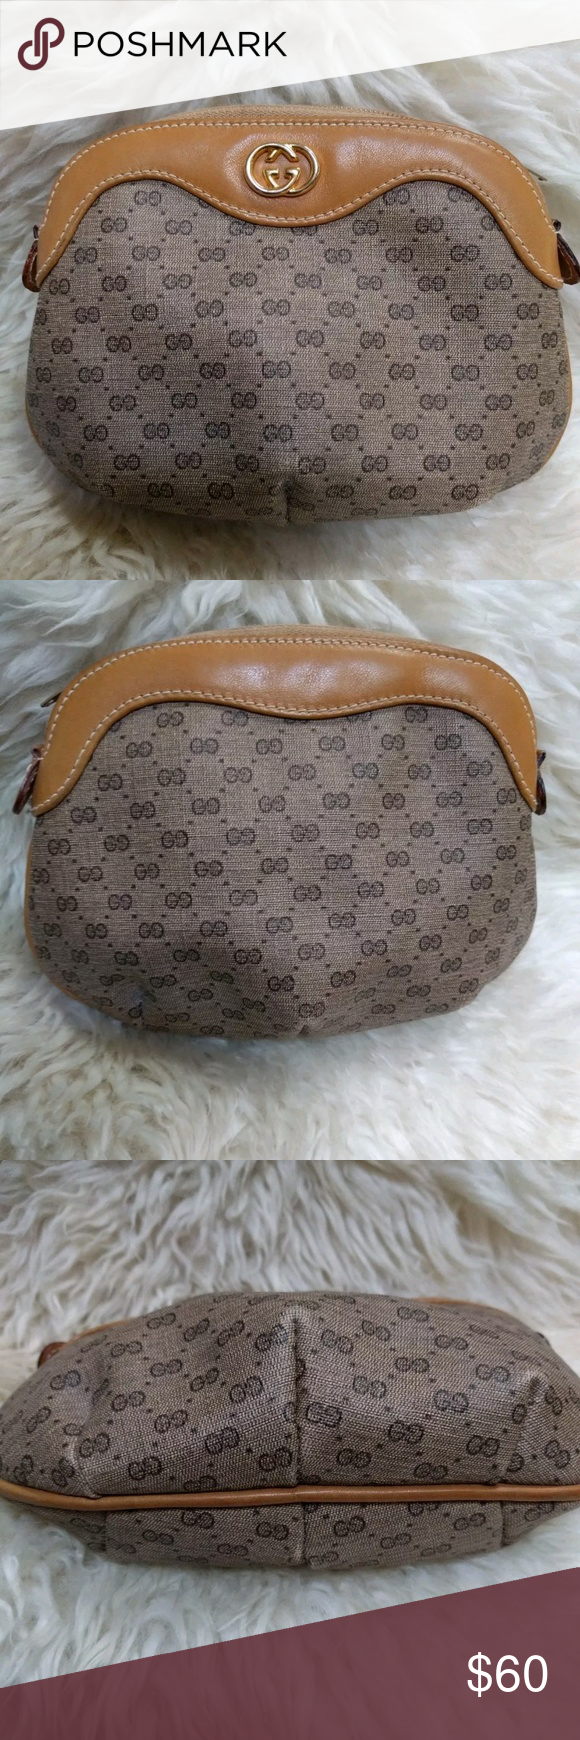 Gucci Makeup Bag Vintage Gucci makeup, Makeup bag